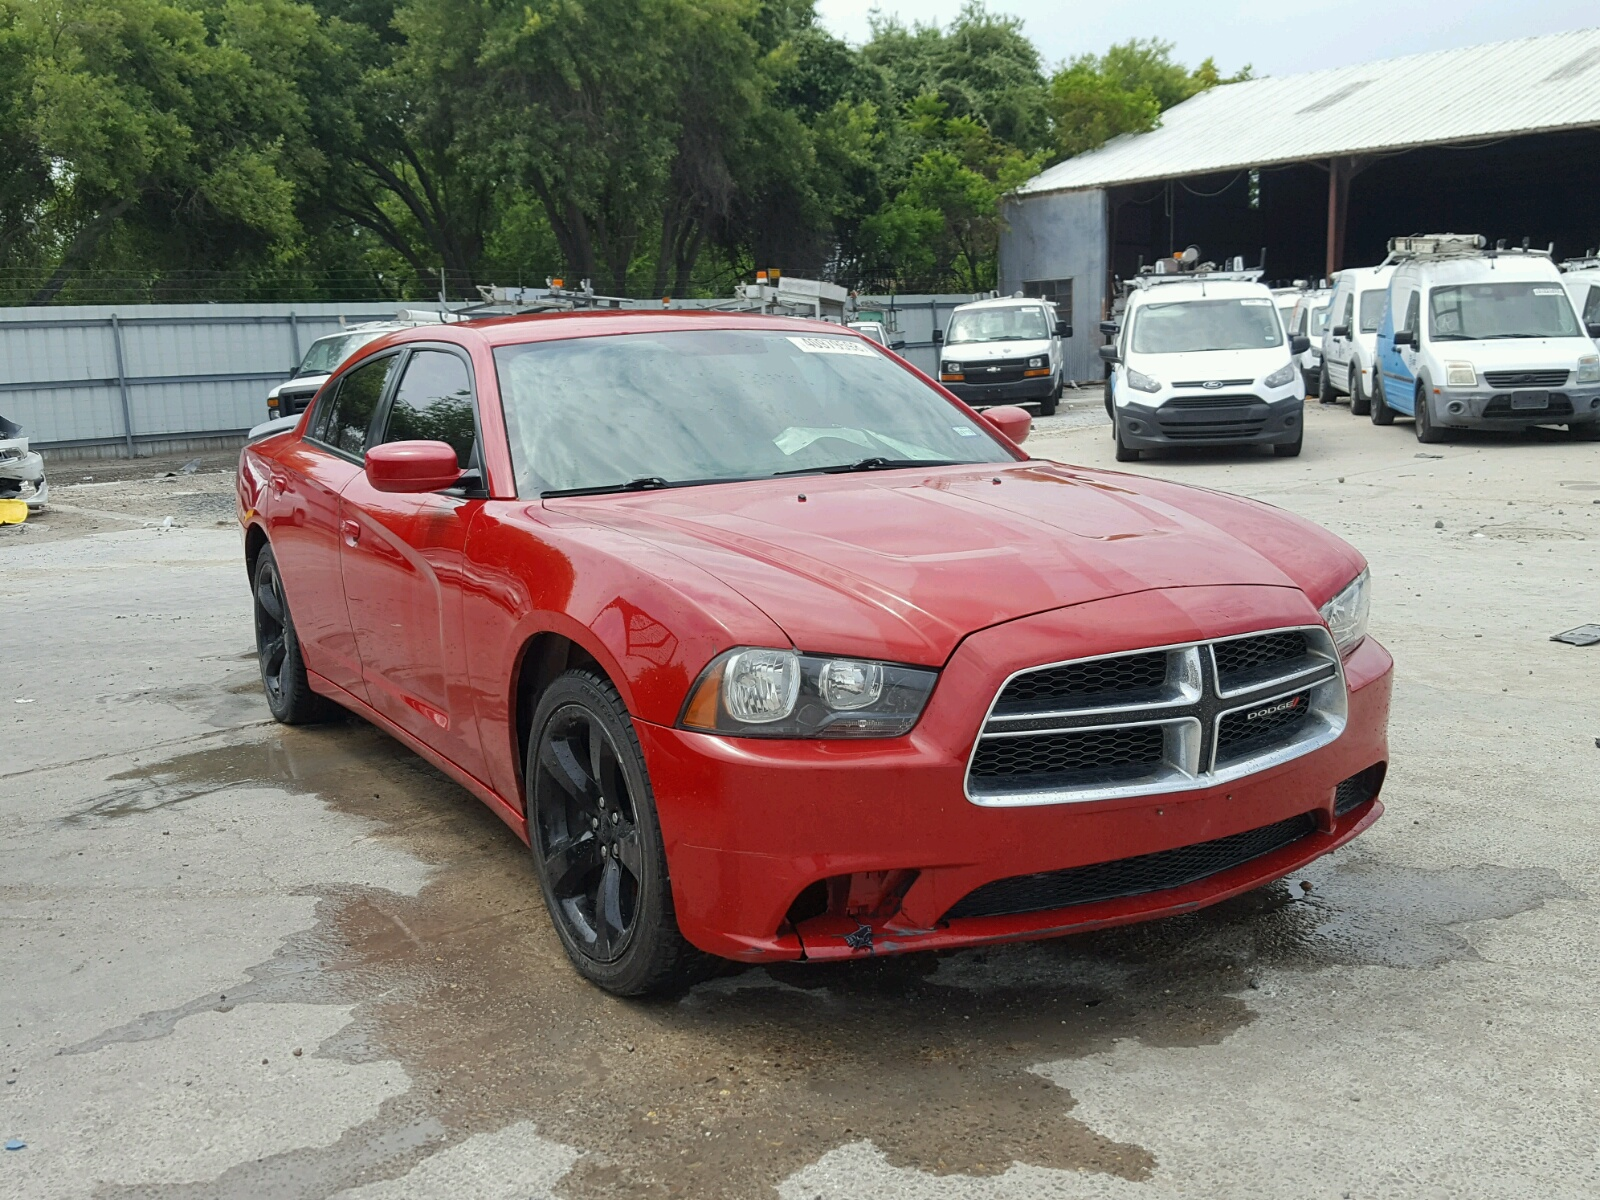 2011 Dodge Charger for sale at Copart Corpus Christi TX Lot